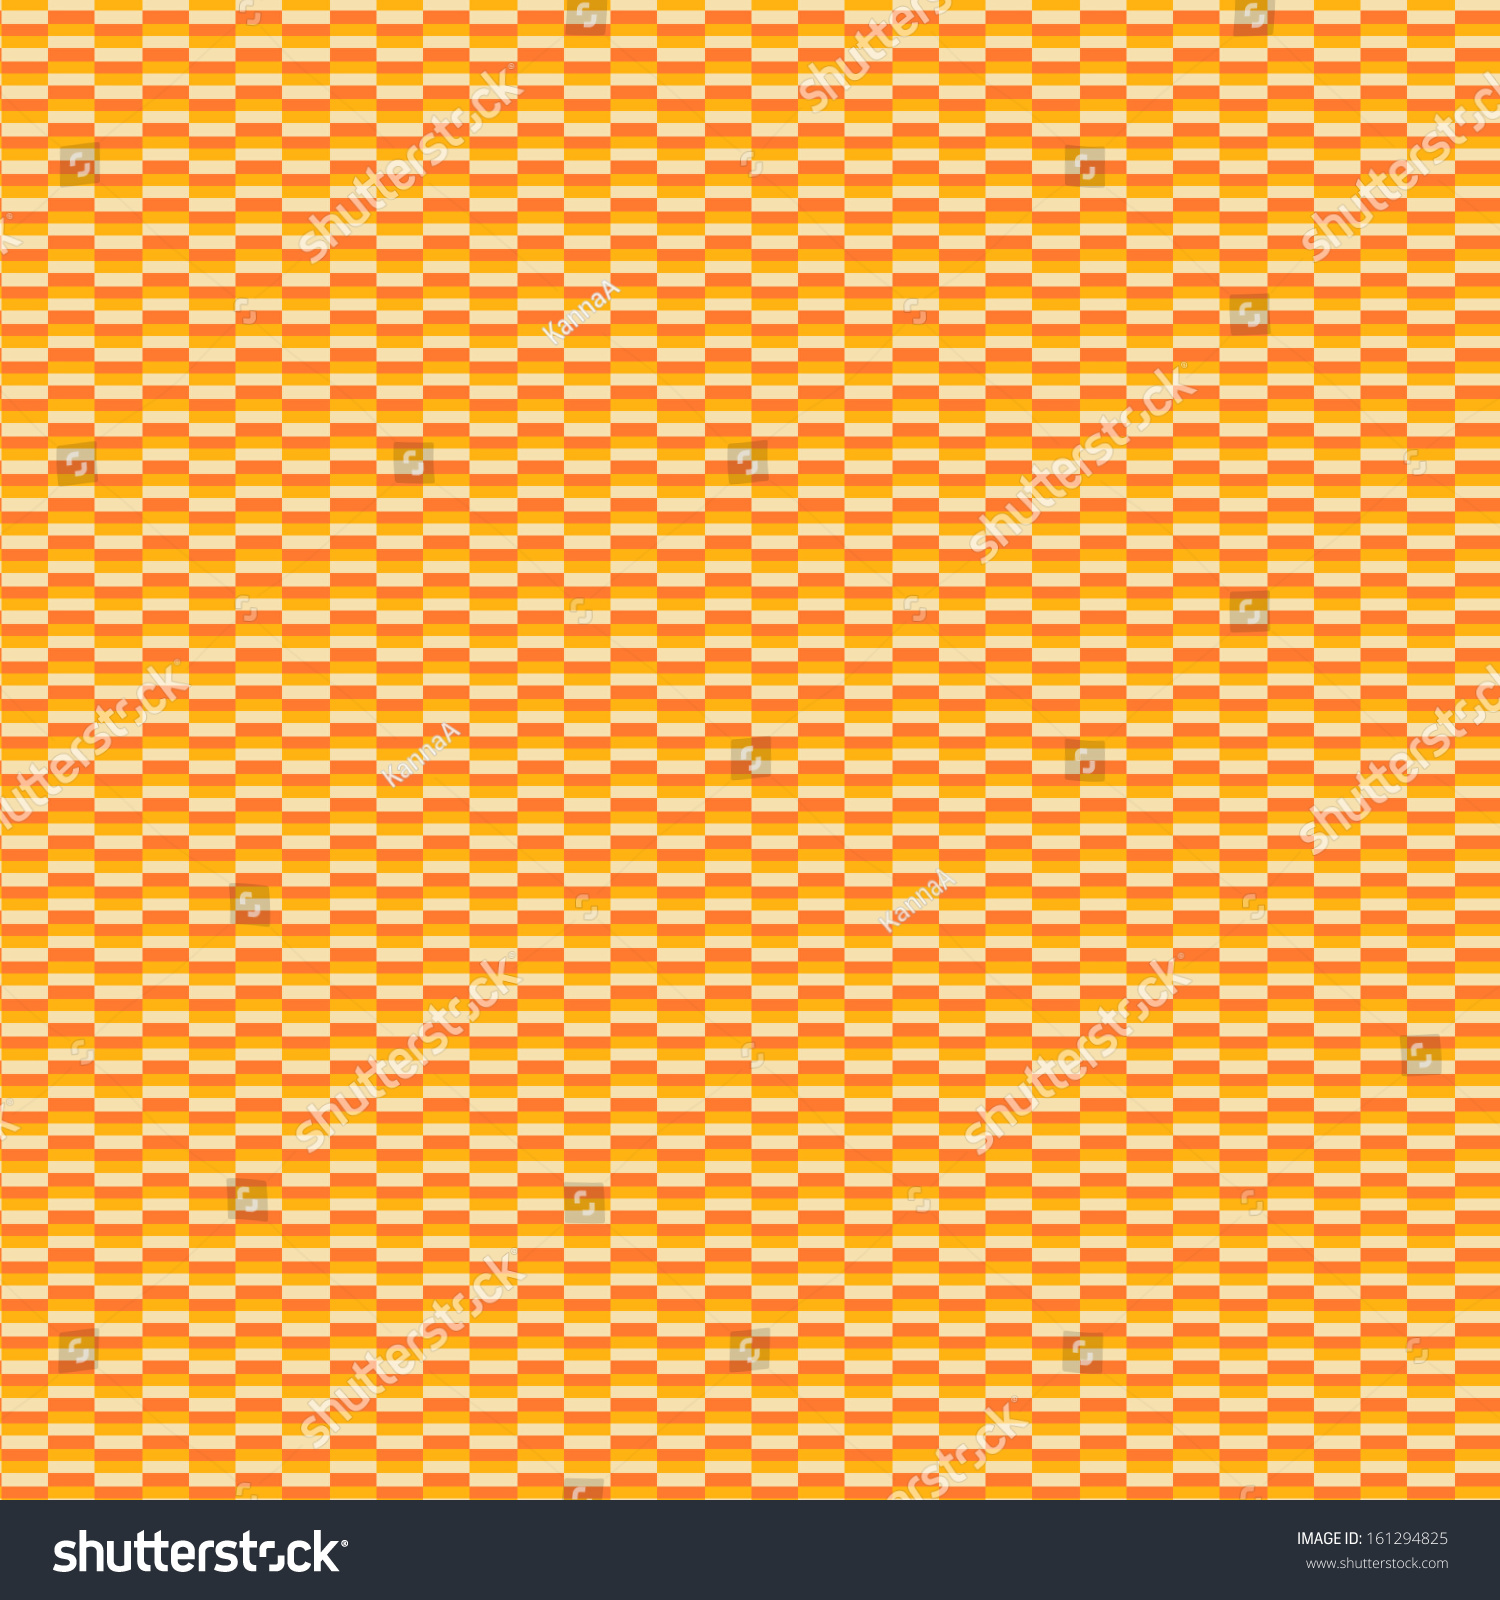 Vector seamless geometric pattern - simple abstract vintage color ...